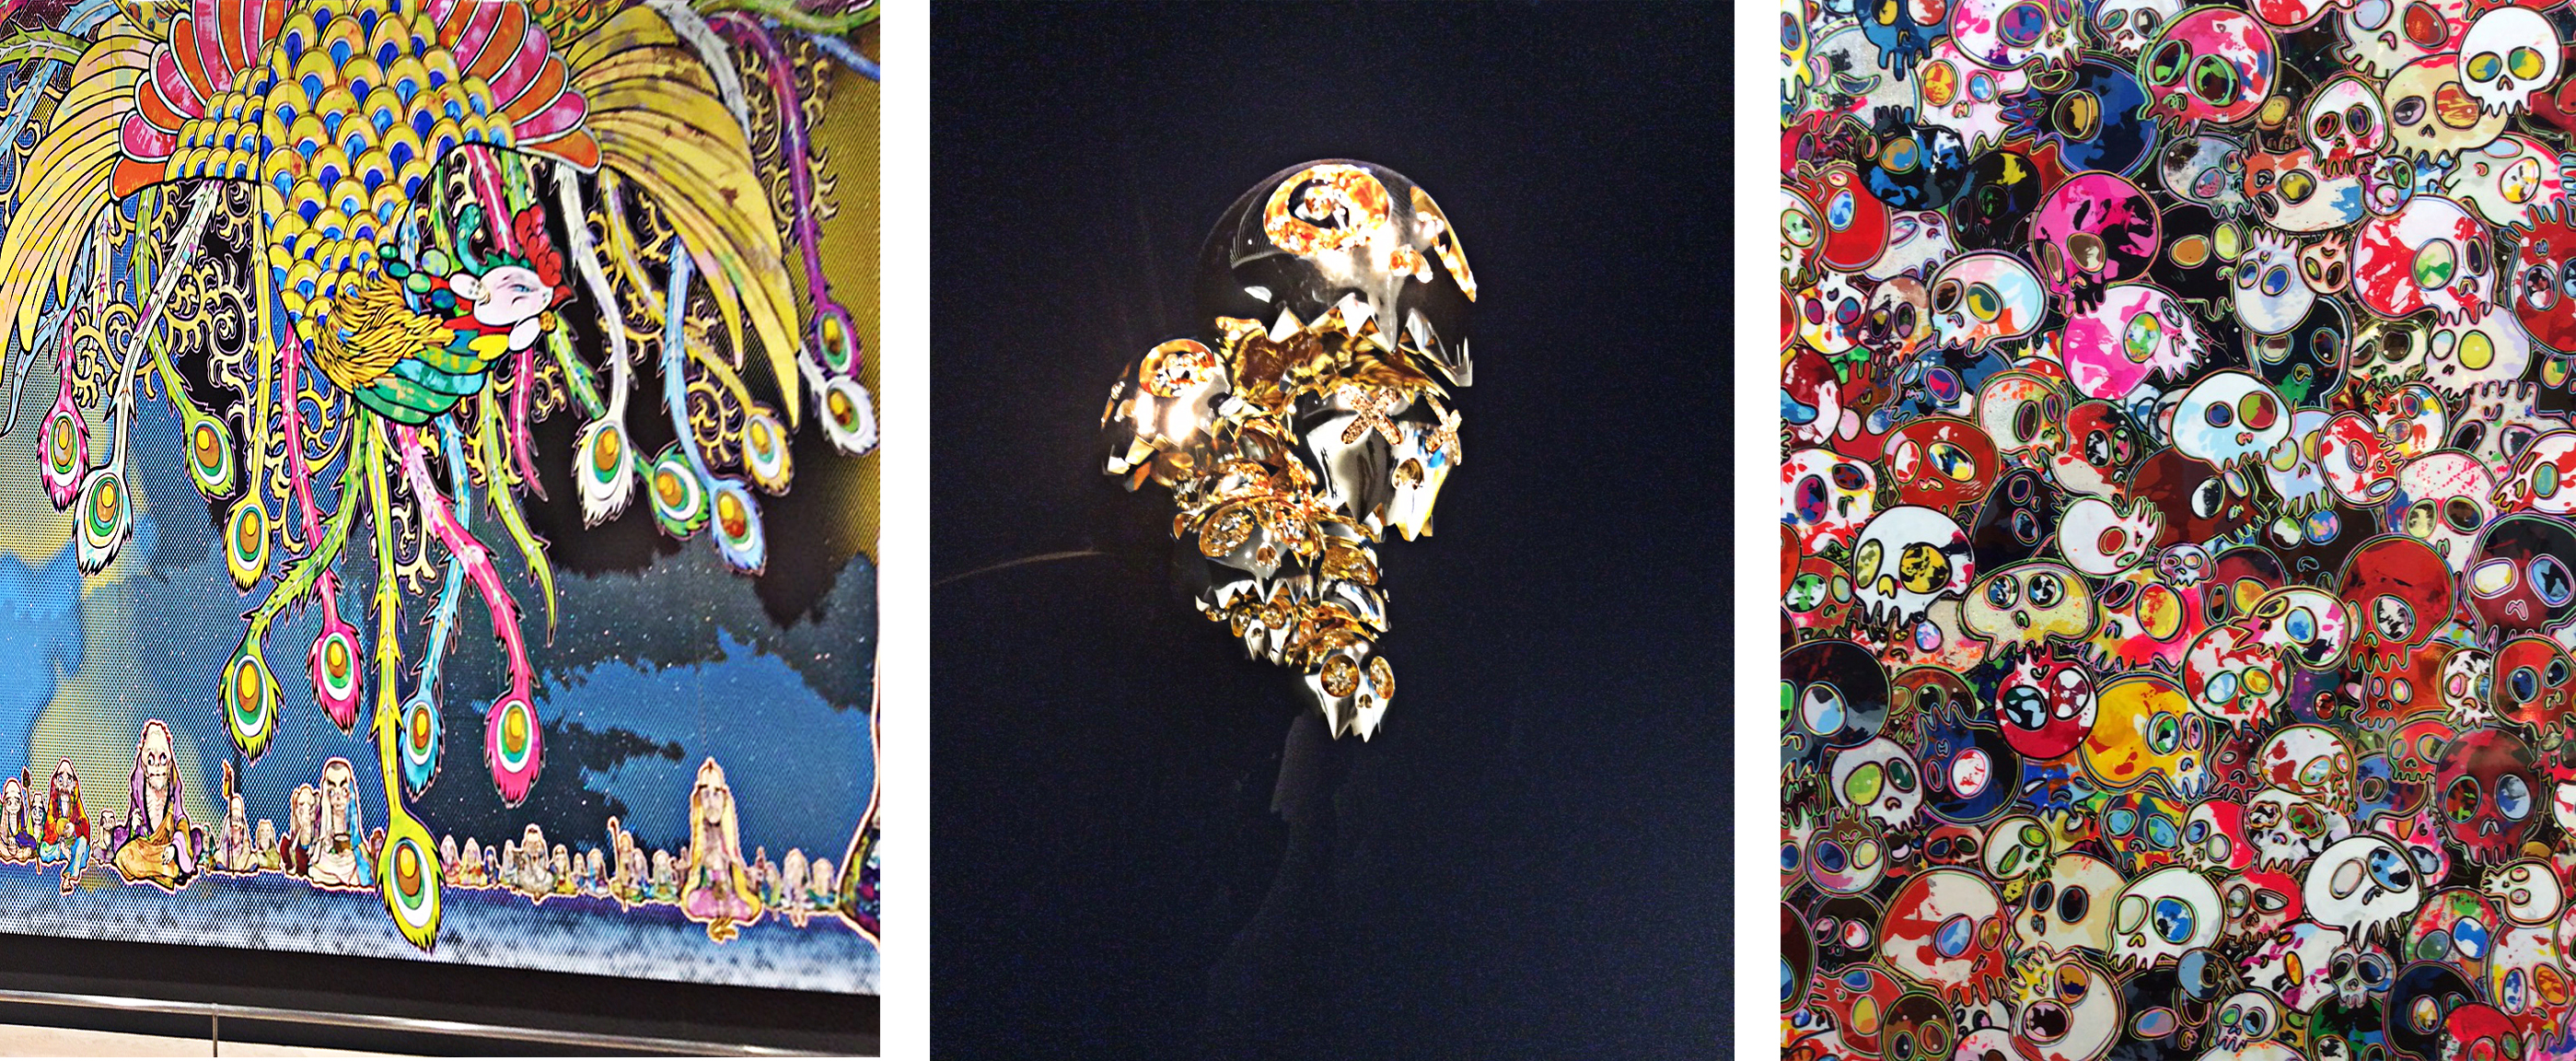 composite image of three views of the exhibition. In the centre is a gold abstract sculpture against a black background; on the right massed white and multi-coloured skulls and on the left a colourful peacock inspired inspired tail or sleeve with a fist holding a mouse-like creature.